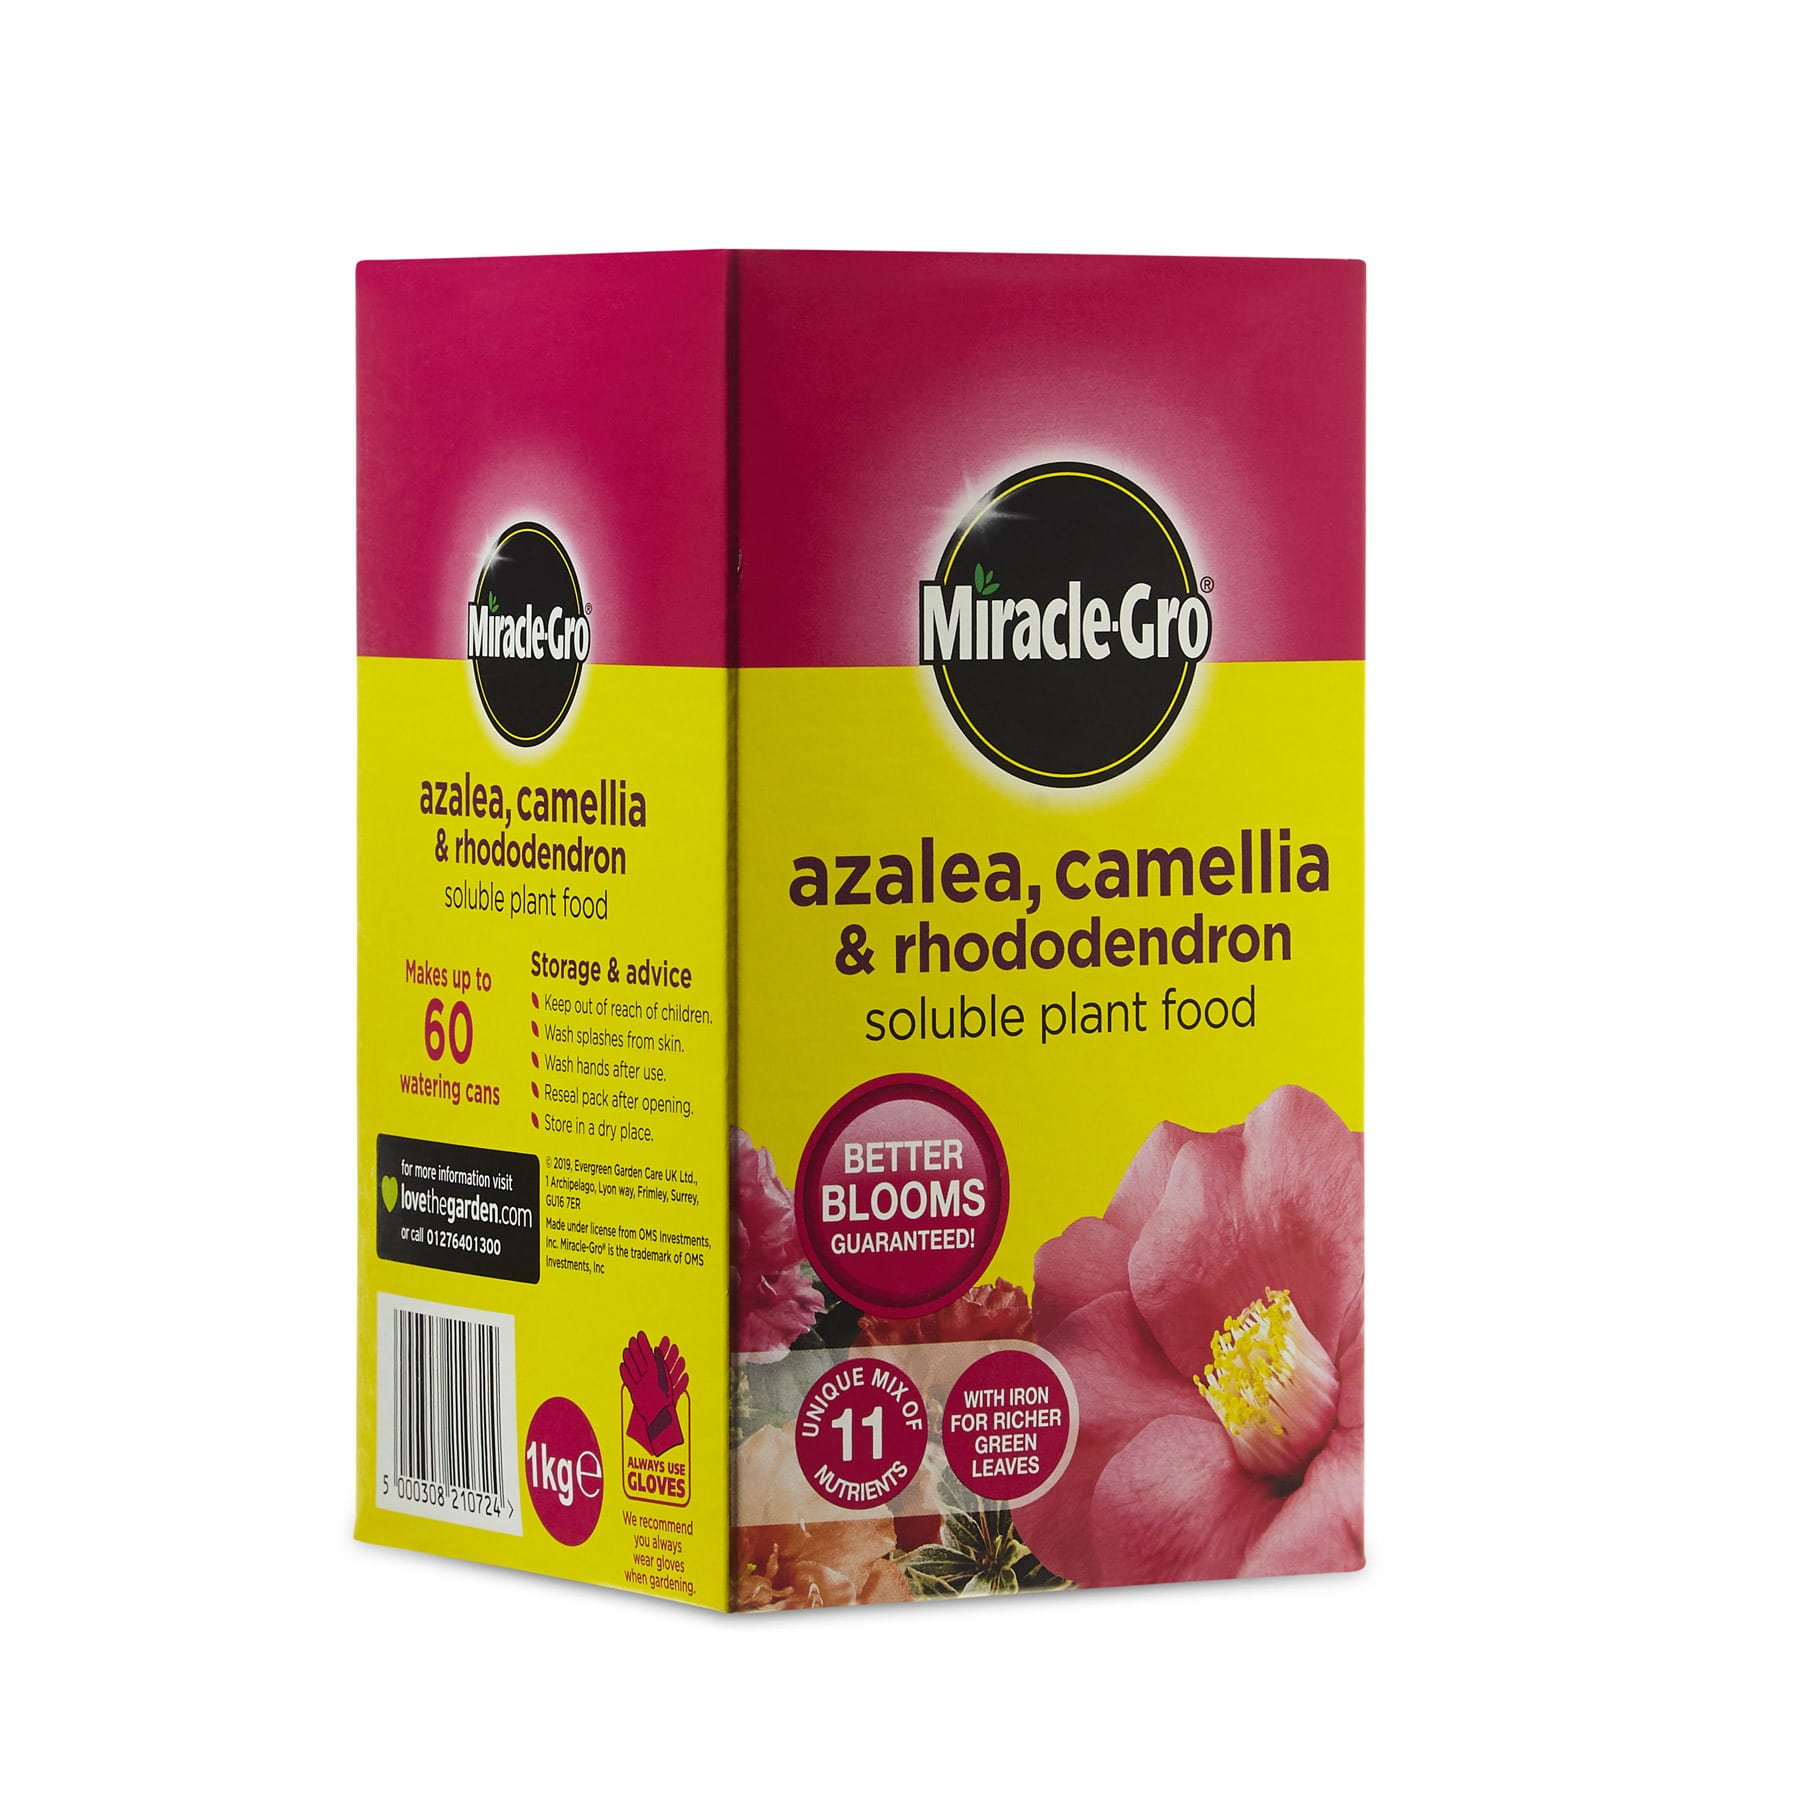 Miracle-Gro Azeala, Camellia and Rhododendron Soluble Plant Food